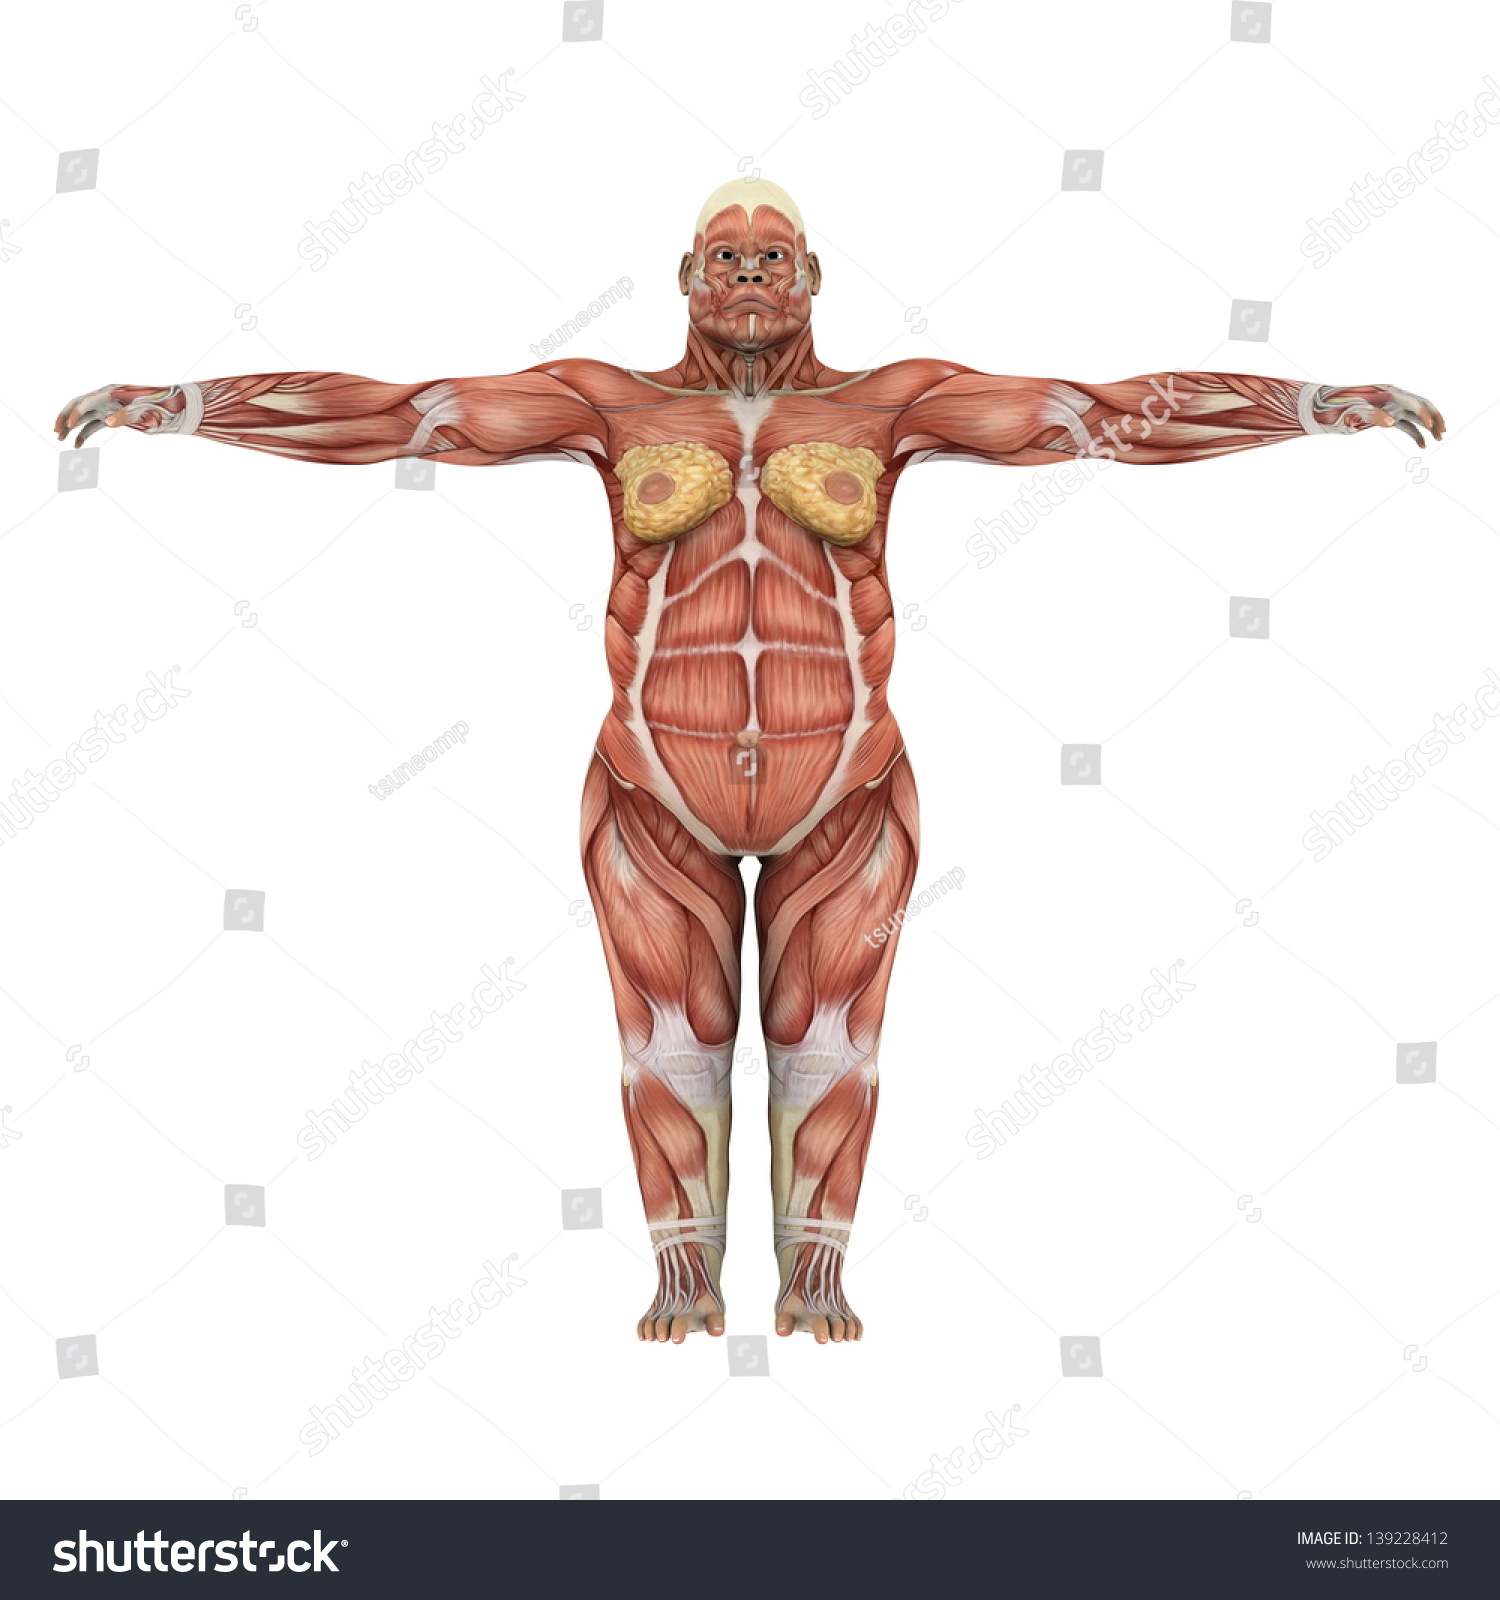 Gorilla Stock Illustration 139228412 - Shutterstock